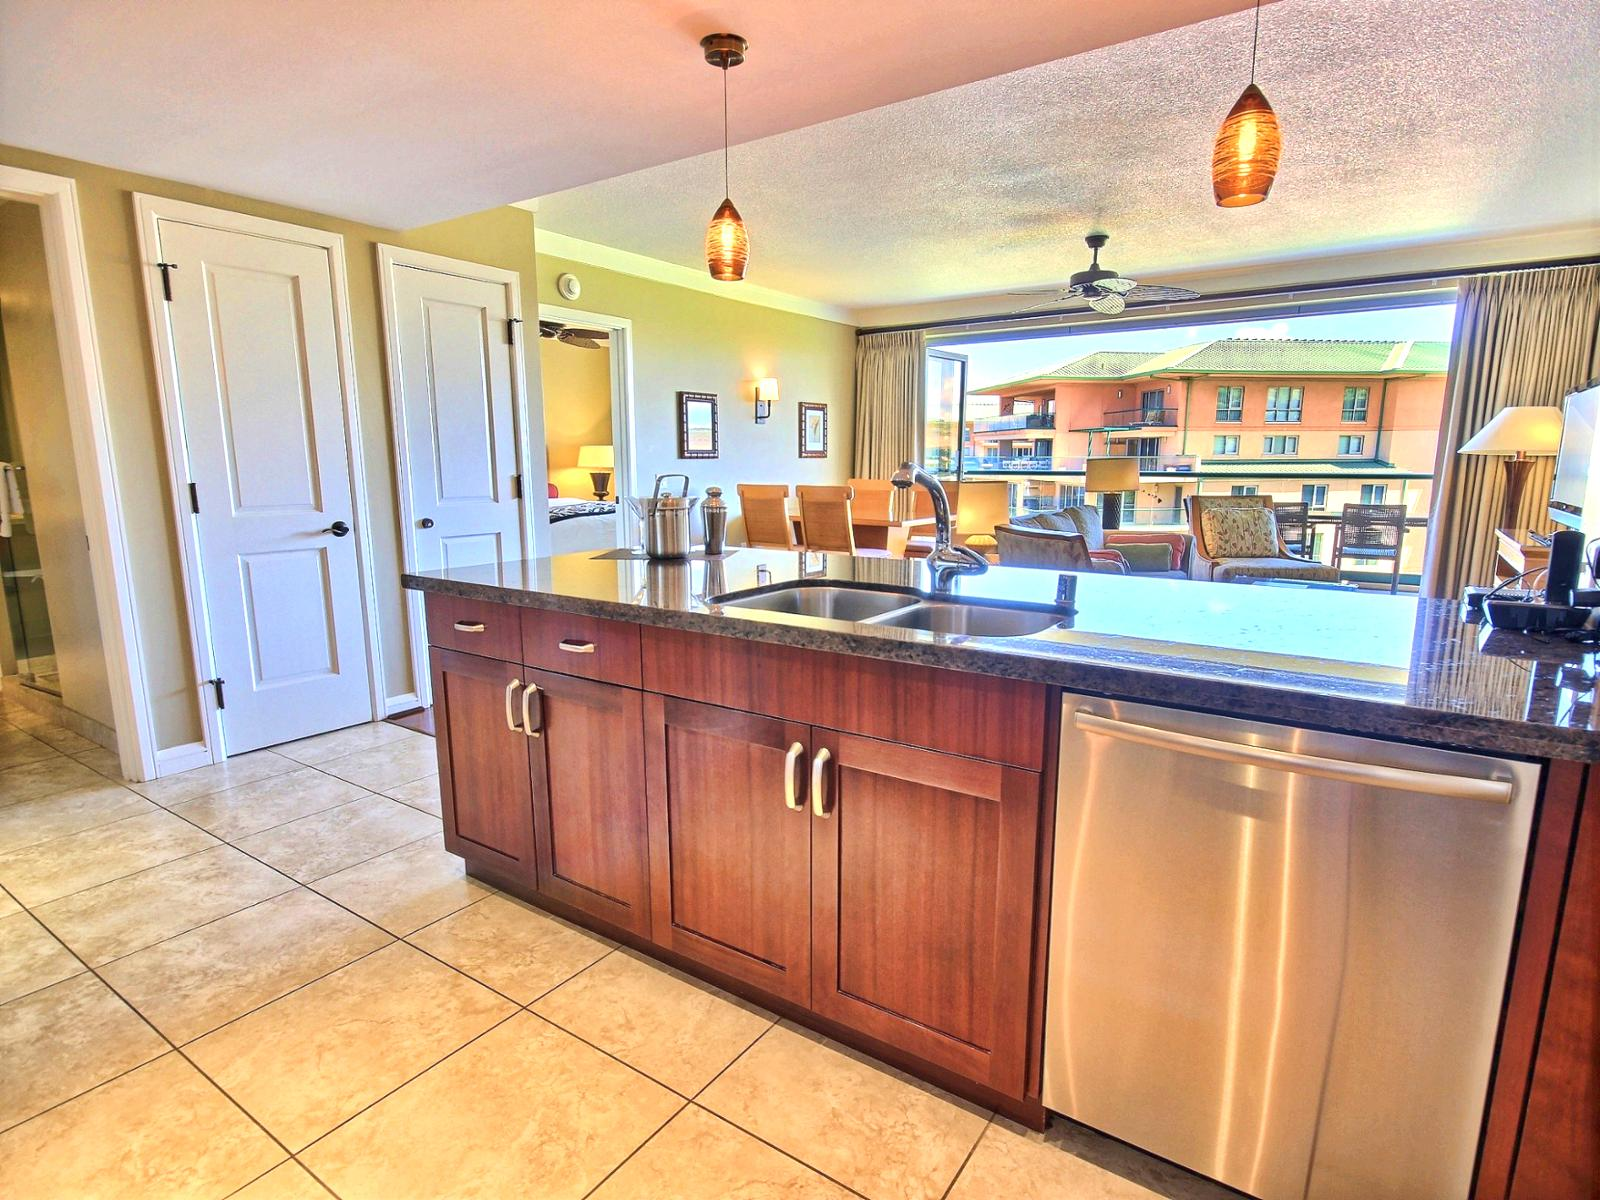 Large gourmet kitchen with granite counter tops. Looking out into the living room from the kitchen.